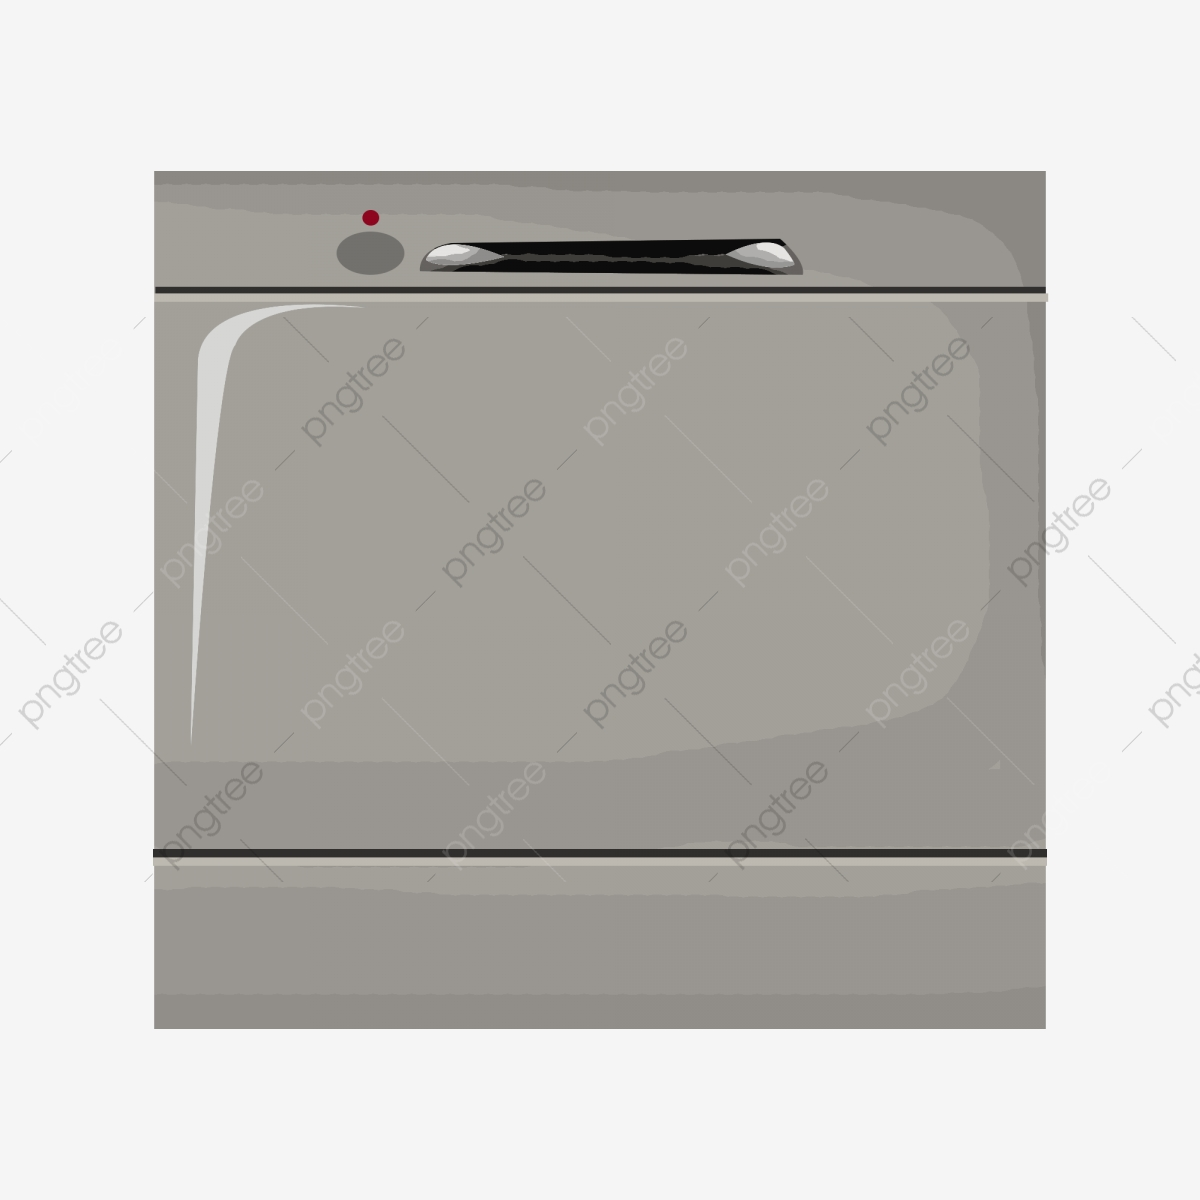 Electrical clipart home appliance. Western style electric oven